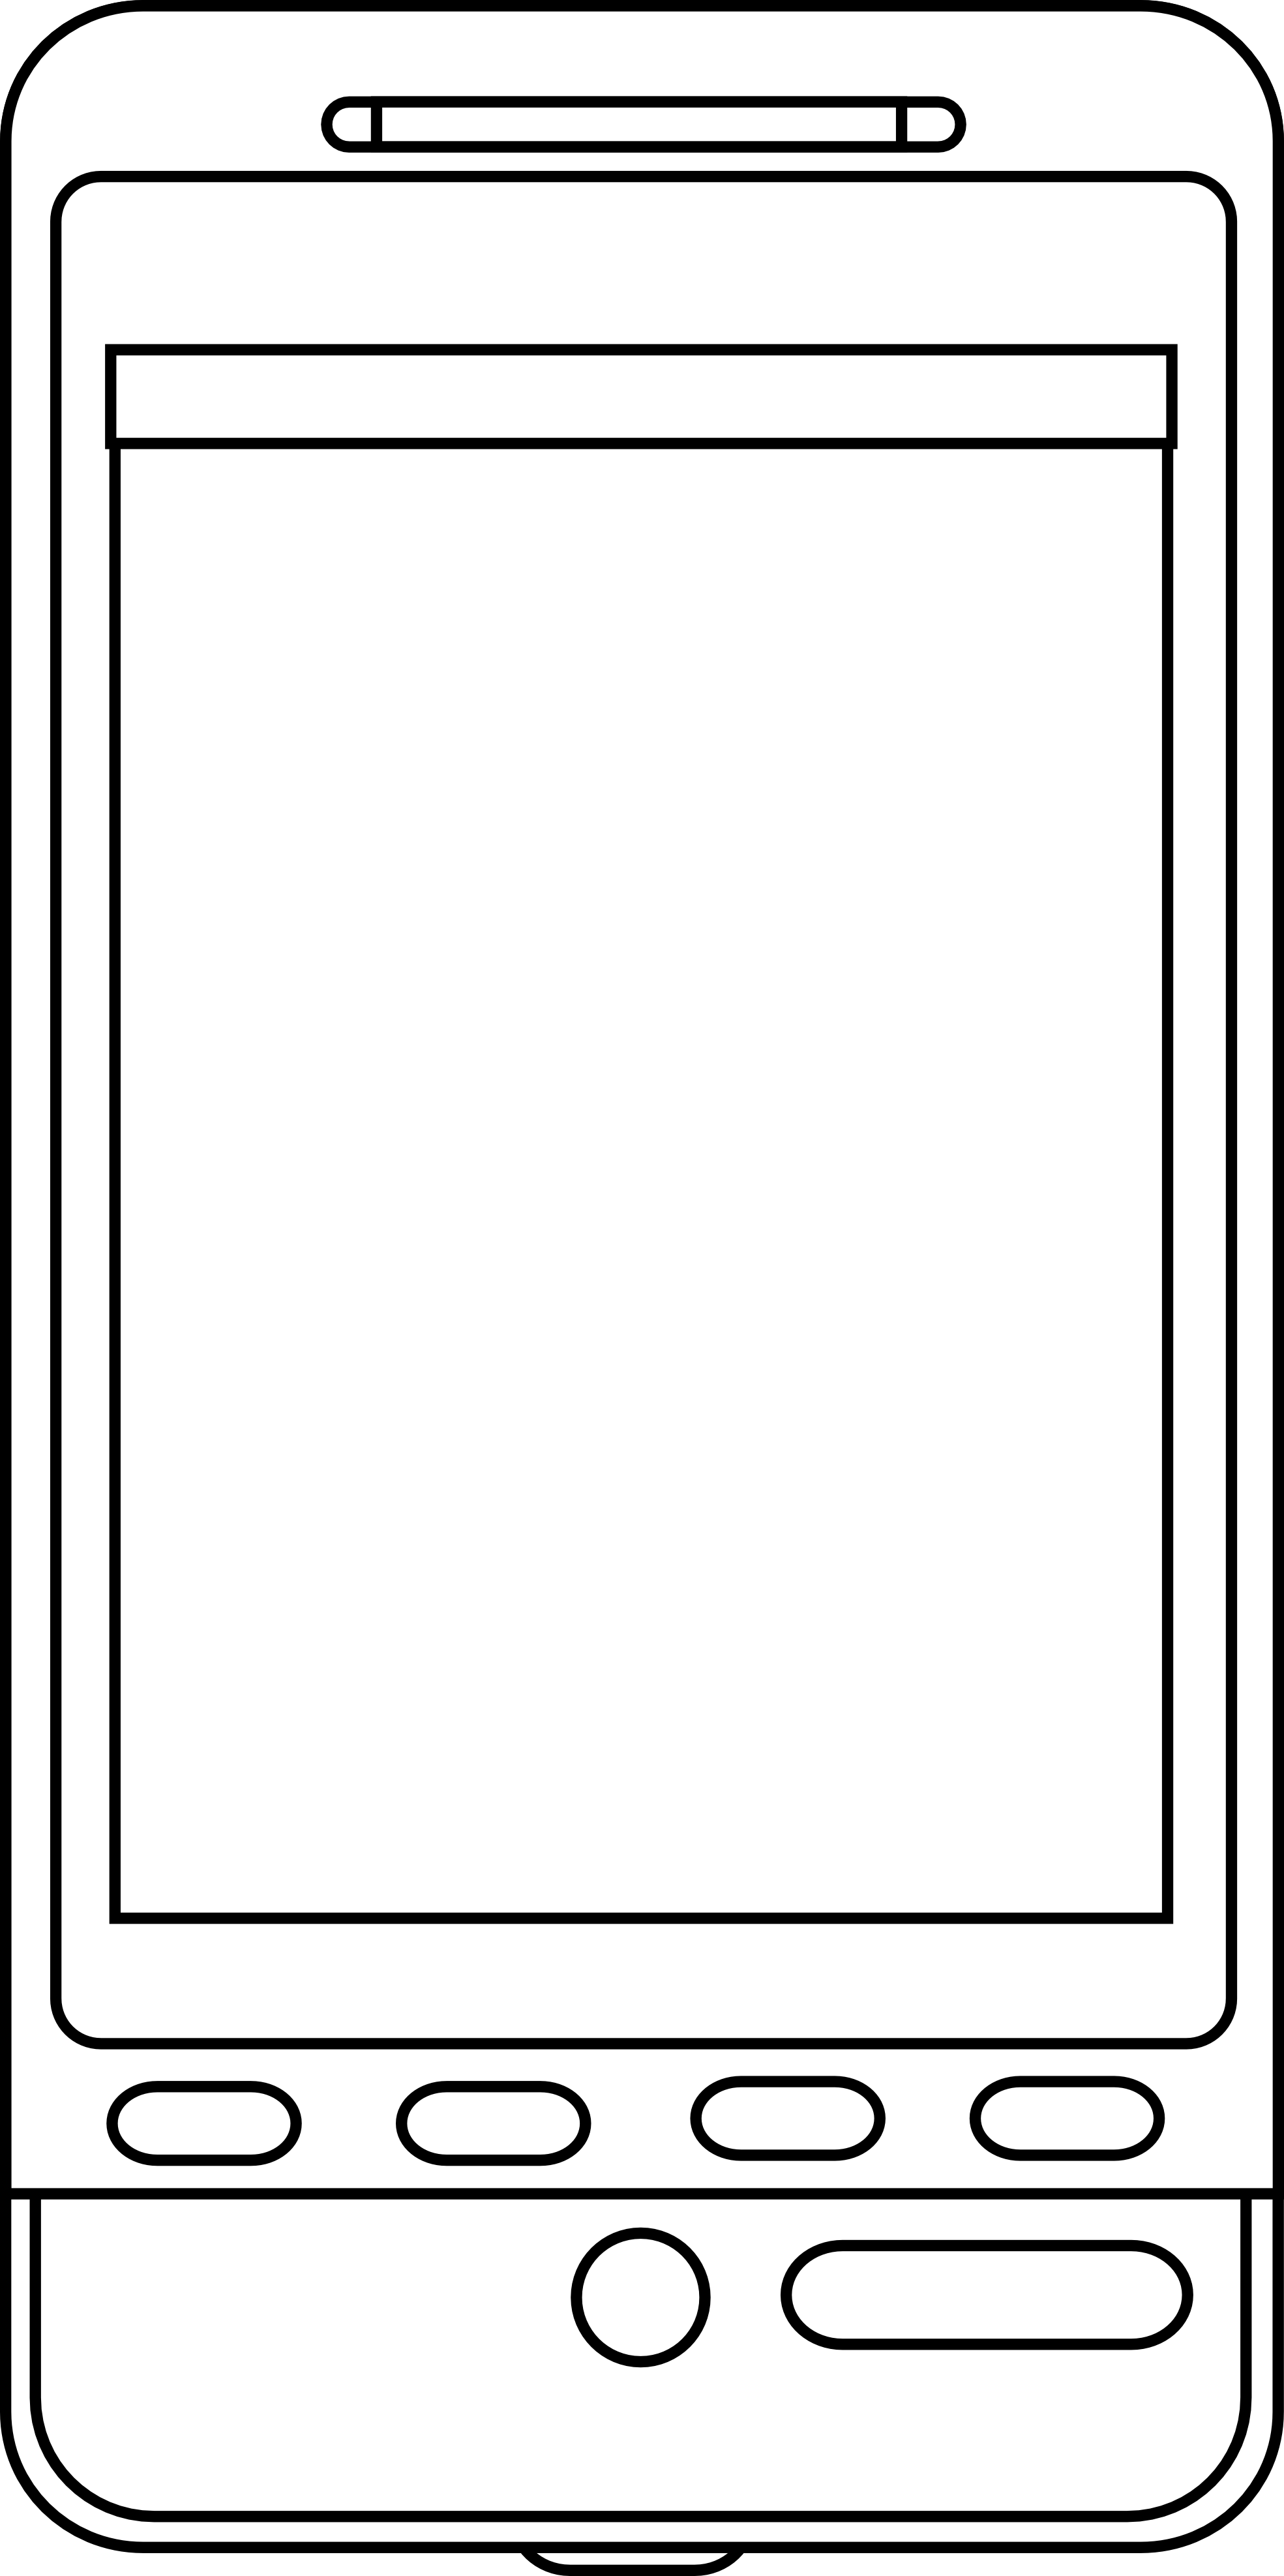 Phone panda free images. Cell clipart black and white